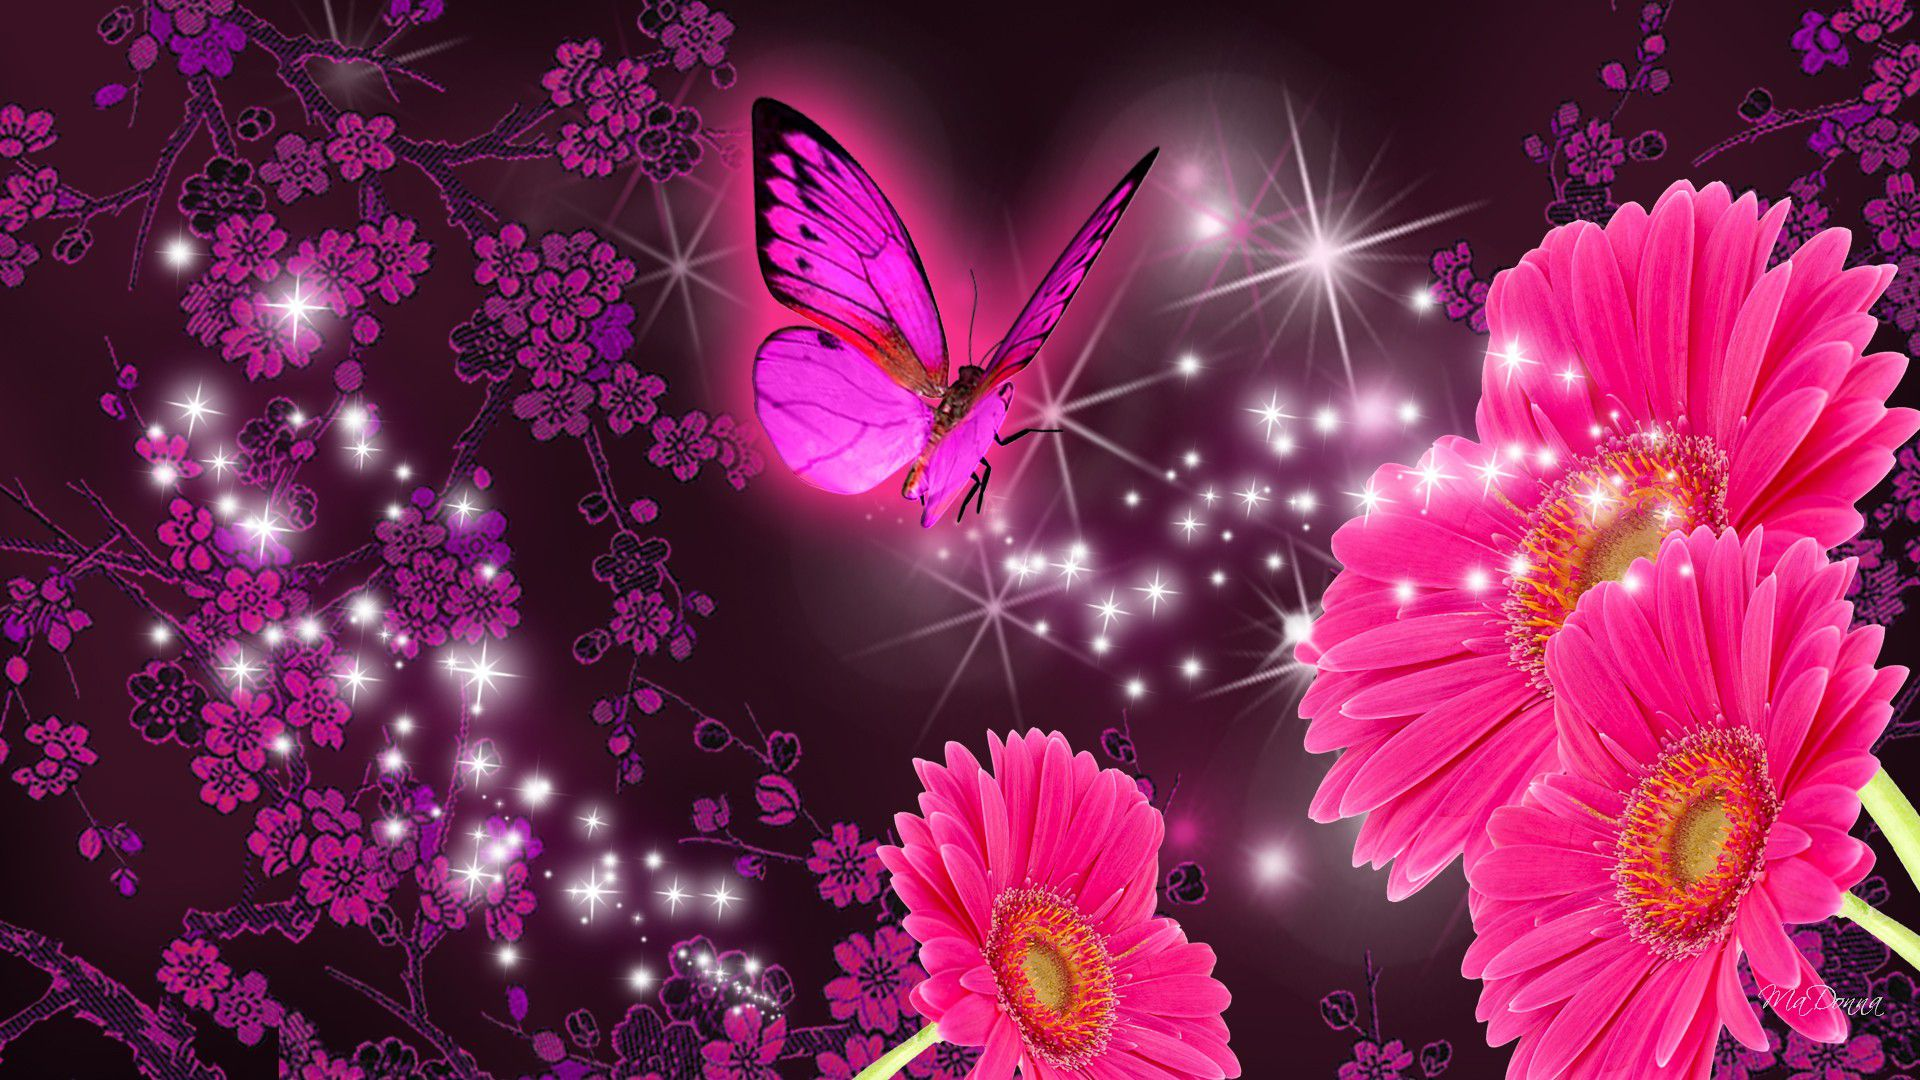 Pink Butterfly Flower Wallpaper Iphone - Pink Flowers And Butterflies , HD Wallpaper & Backgrounds